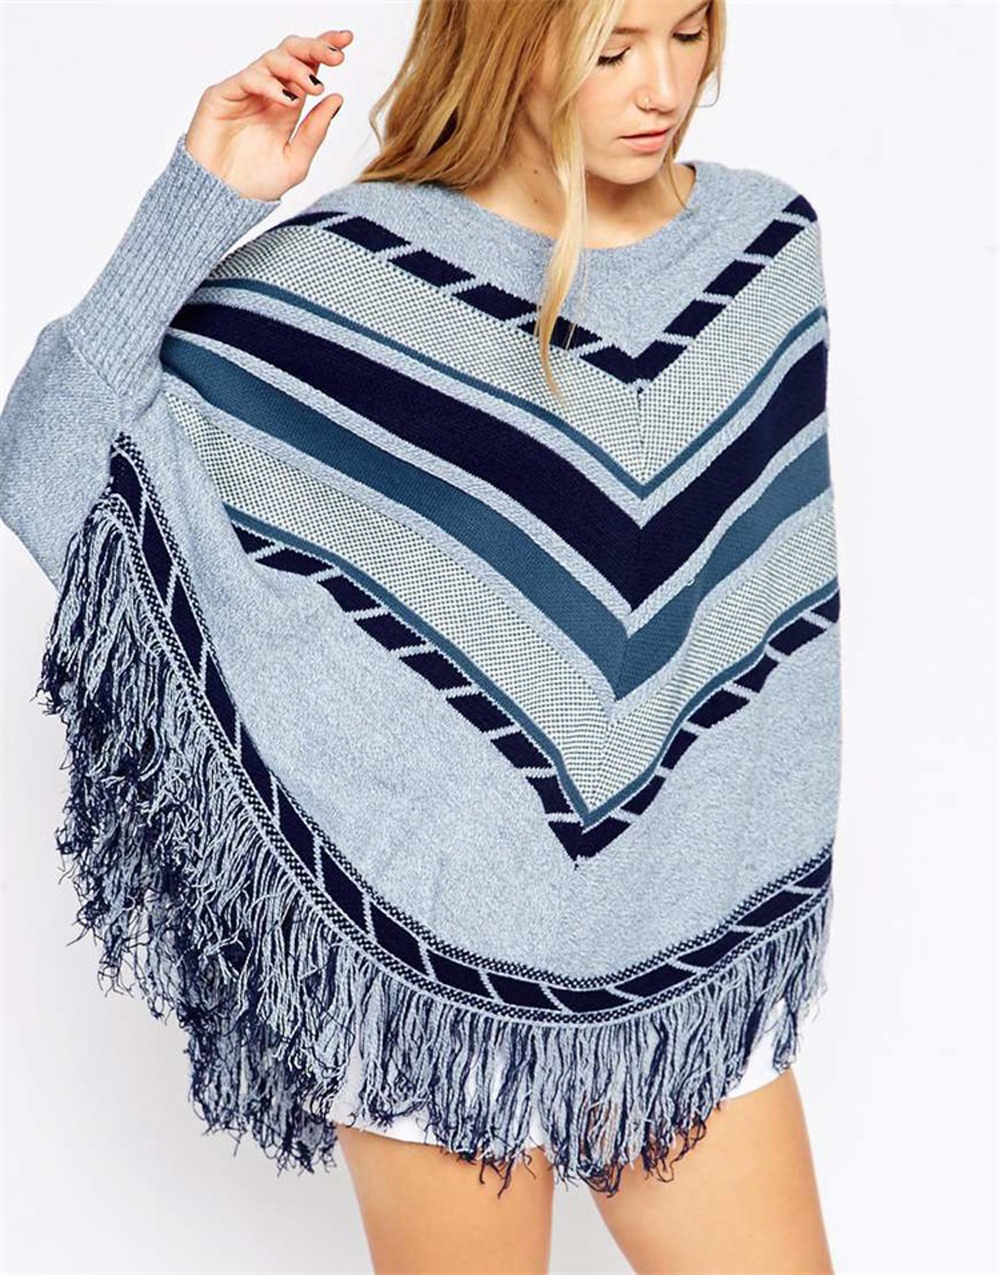 Maternity Tassel Cape Shawl Sweater Poncho Ladies' Cape with Fringed Hem Striped Patchwork Pullover Fashionable Retro Style